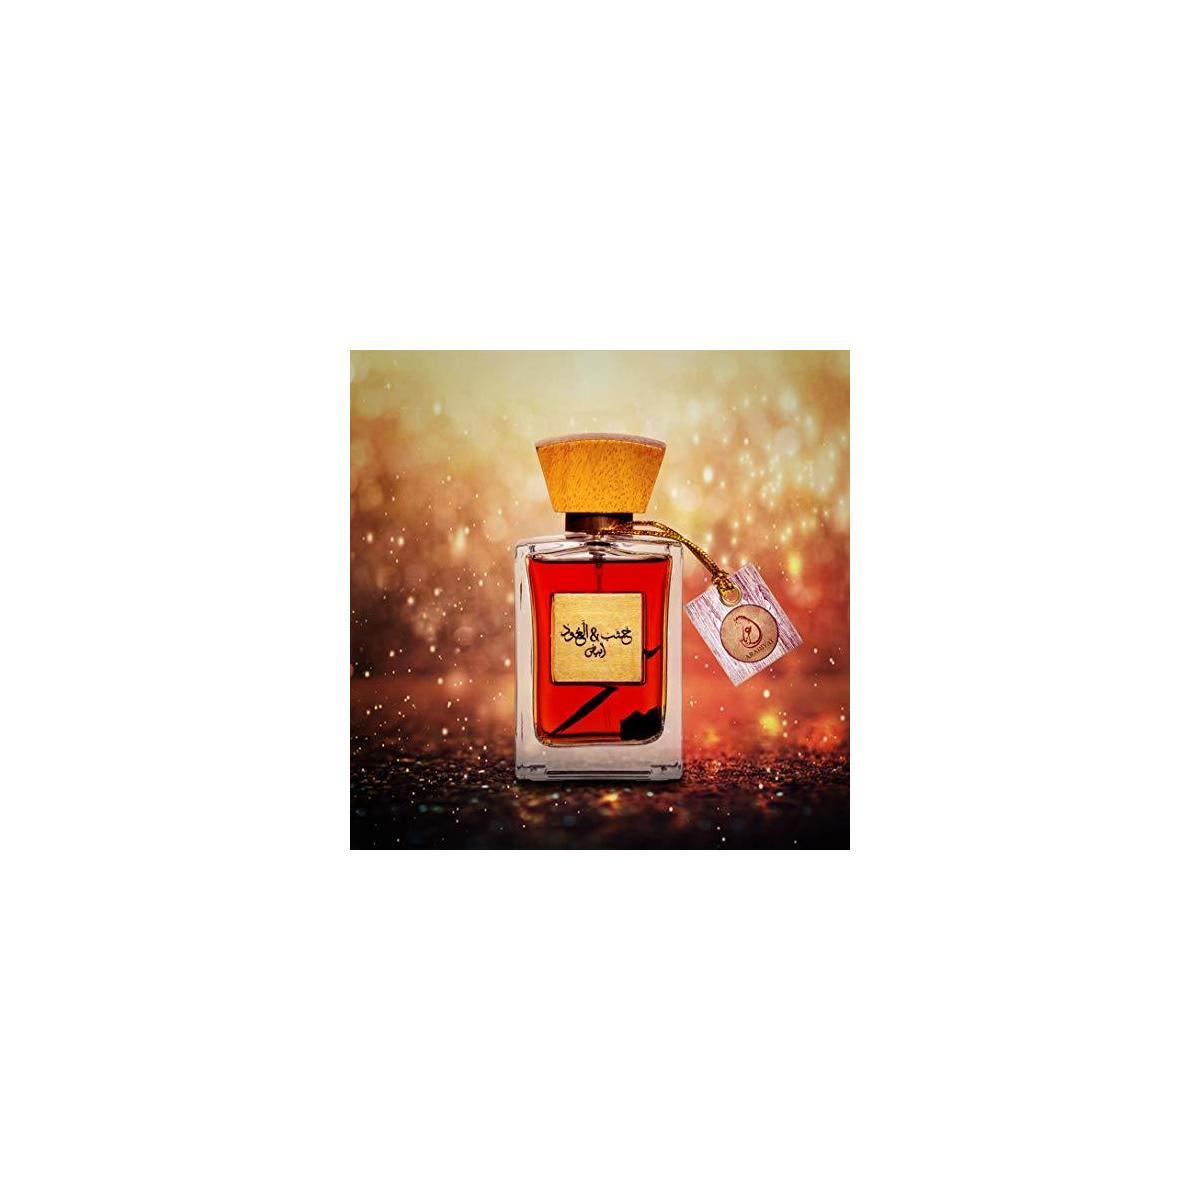 Exotic Oud Perfume for Men & Women | Sensual Cedar, Amber and Oud notes (Oud White 100ml)